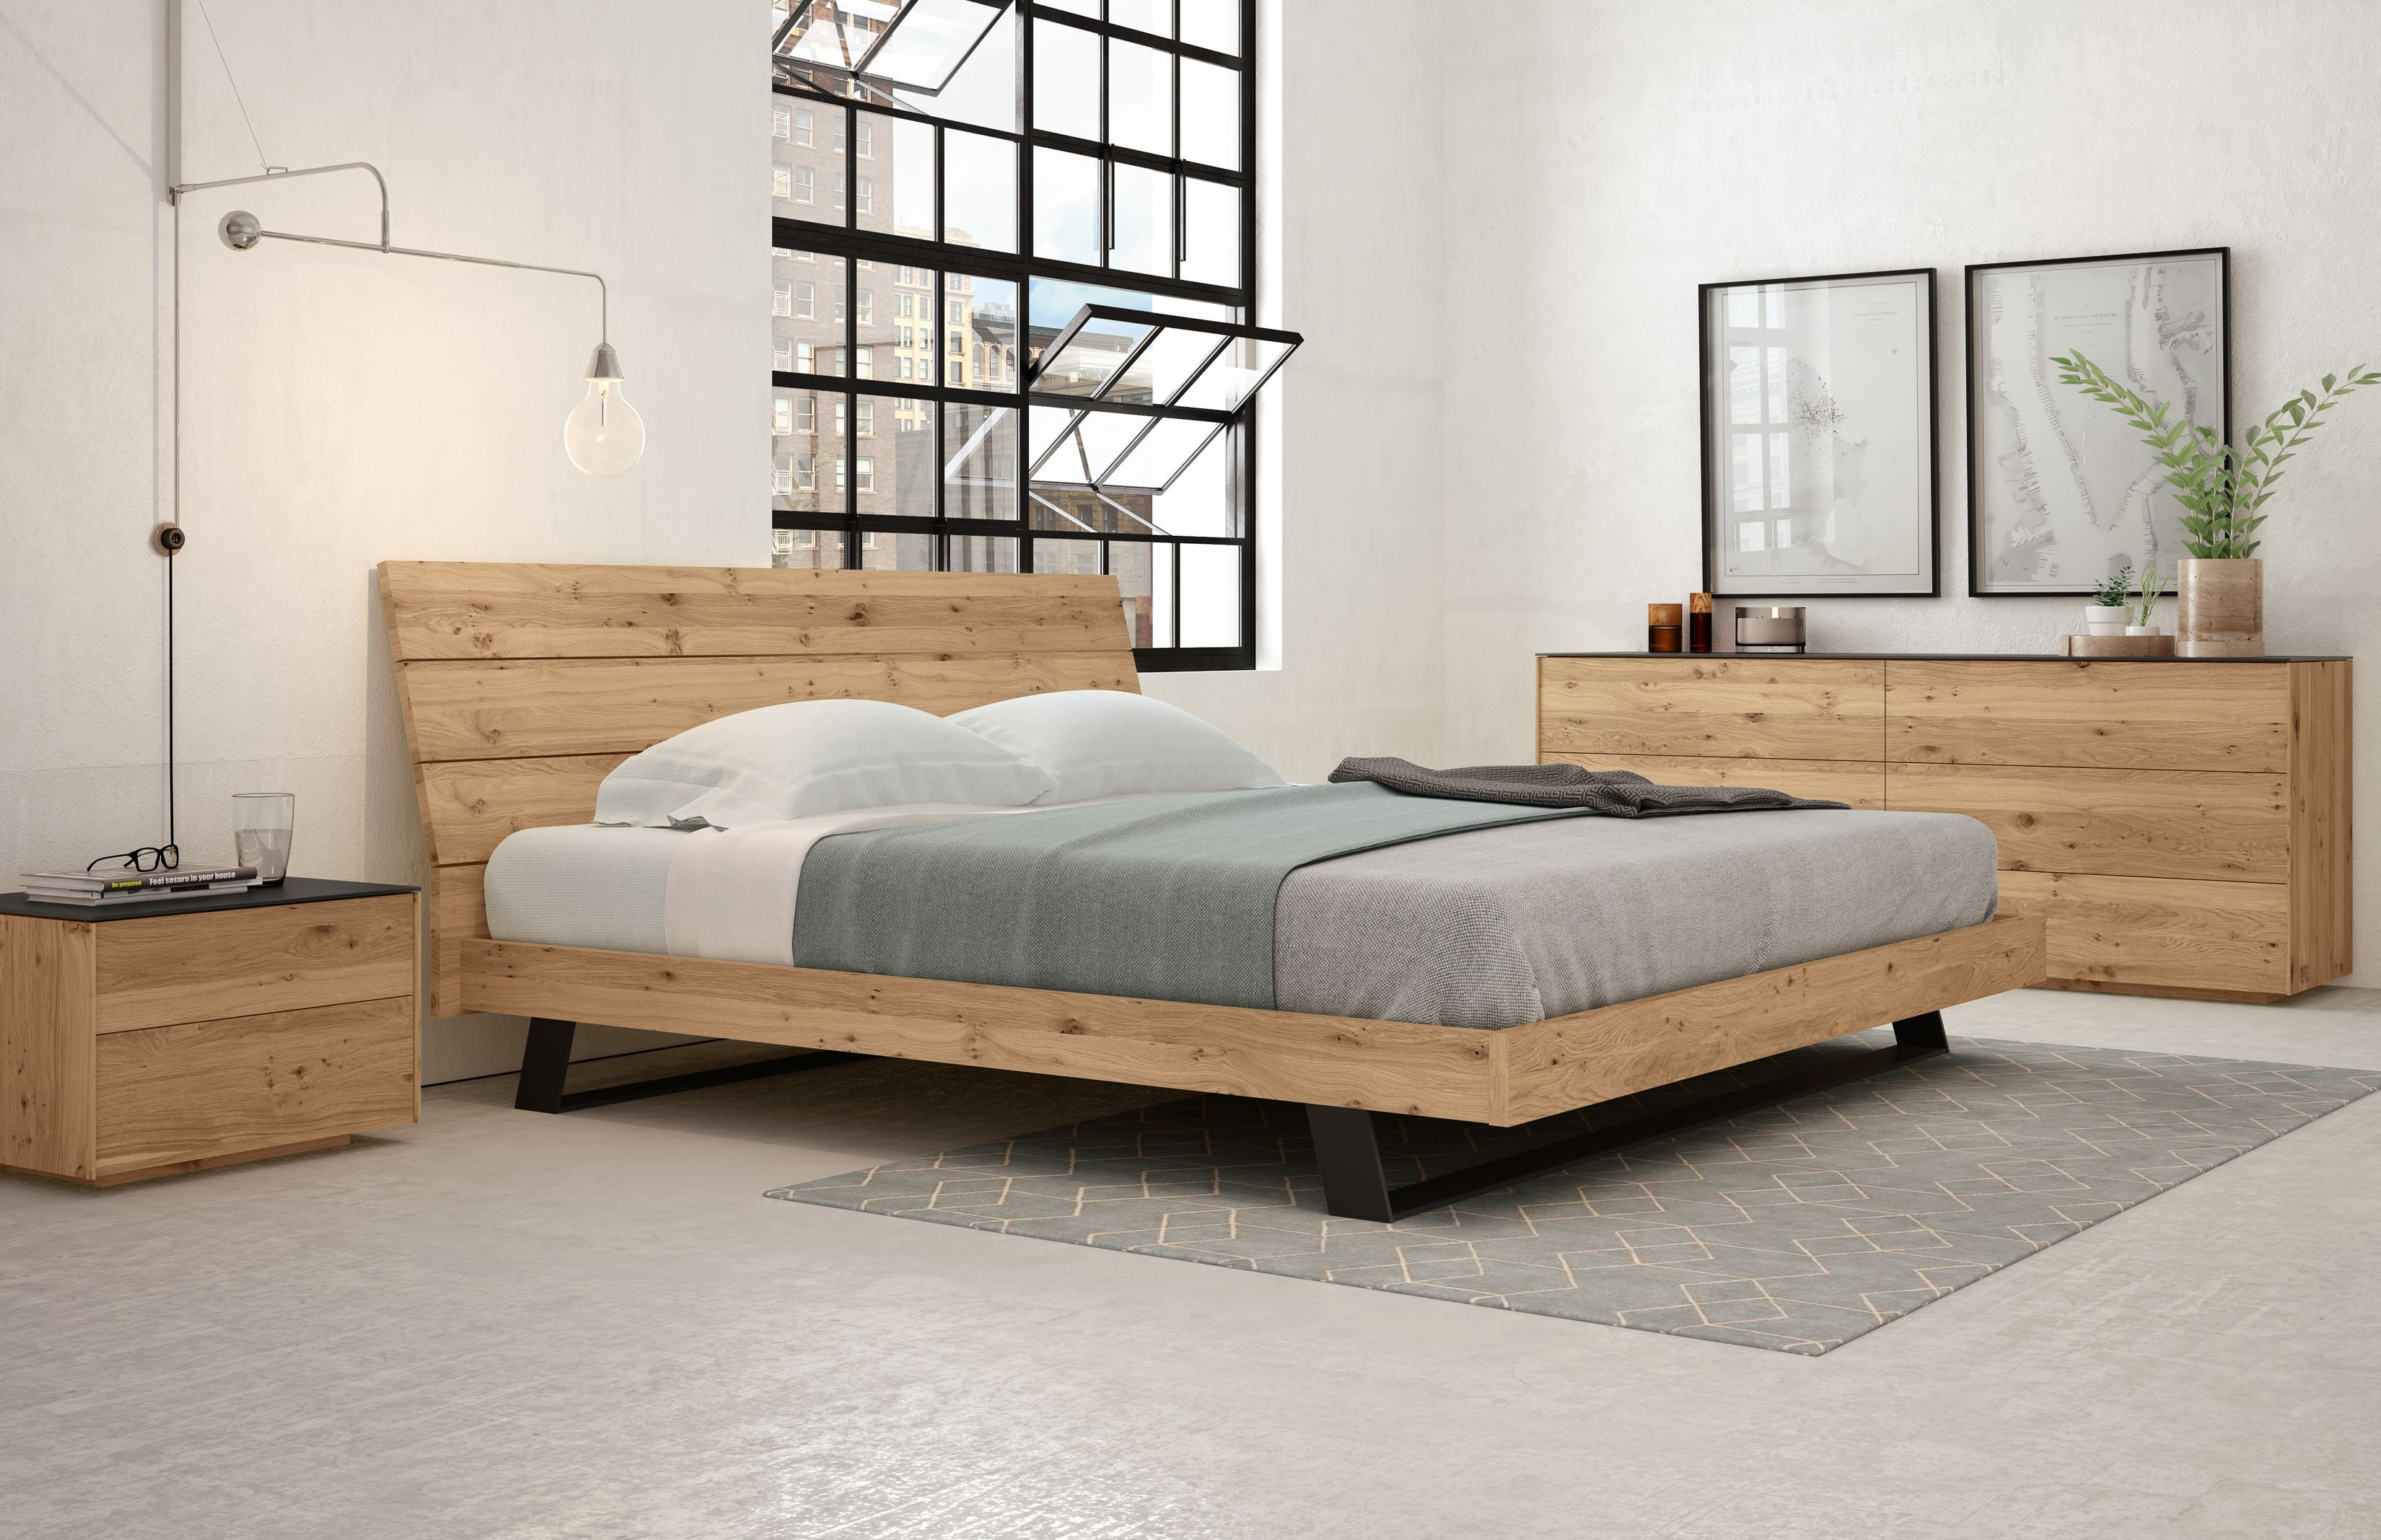 The Bella Queen Bed Features Light Colored White Oak Wood With A Black Frame Both Of Which Large Living Room Furniture Oak Bed Frame Fitted Bedroom Furniture